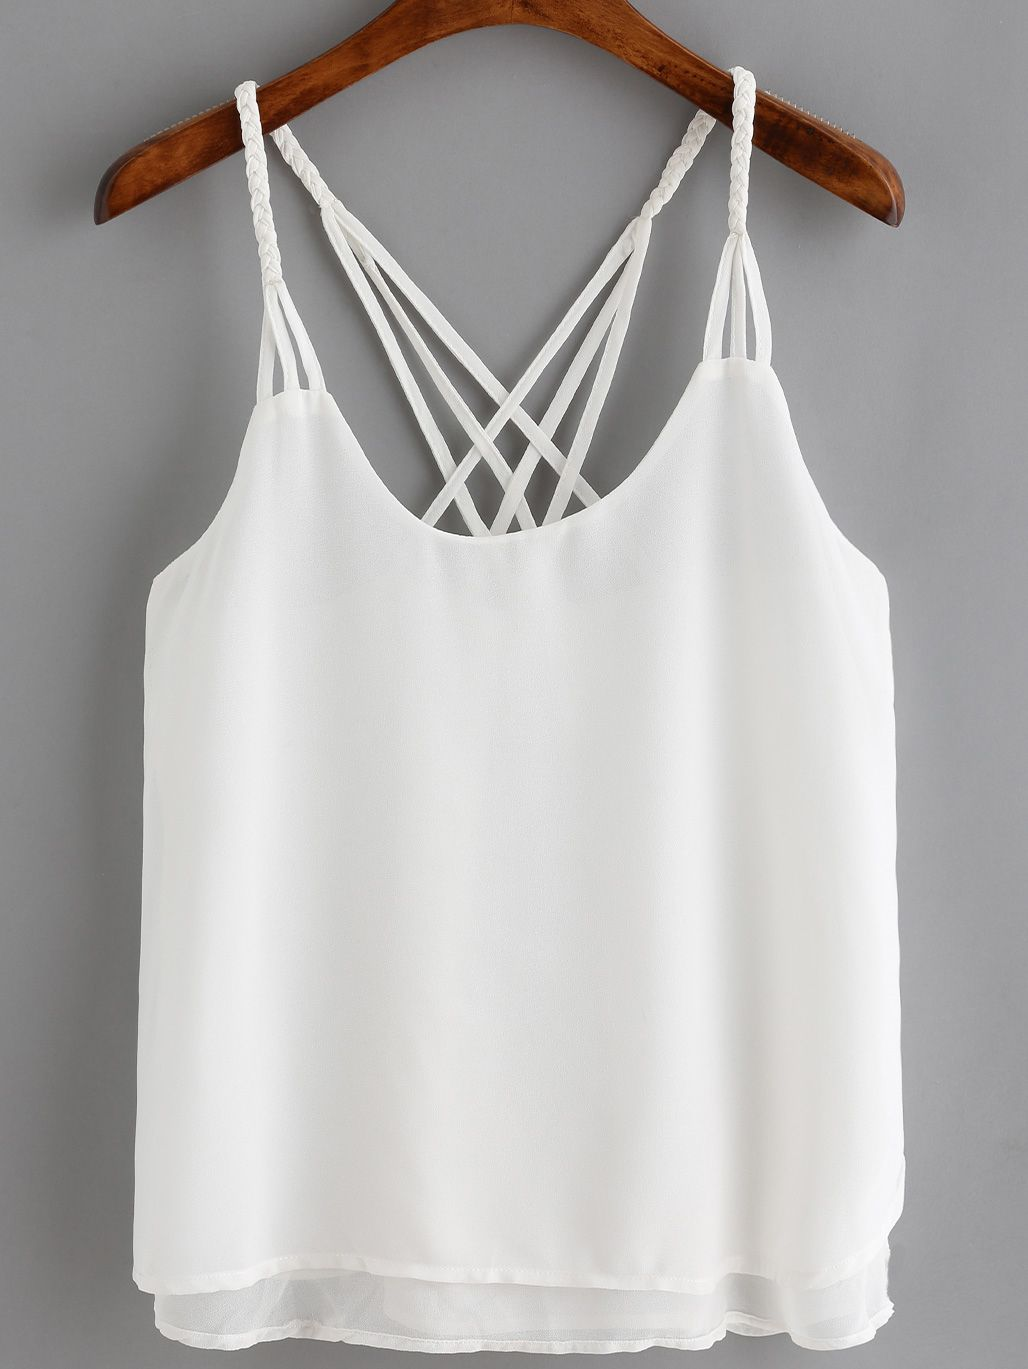 9d69a79d00 Shop White Spaghetti Strap Loose Cami Top online. SheIn offers White  Spaghetti Strap Loose Cami Top & more to fit your fashionable needs.